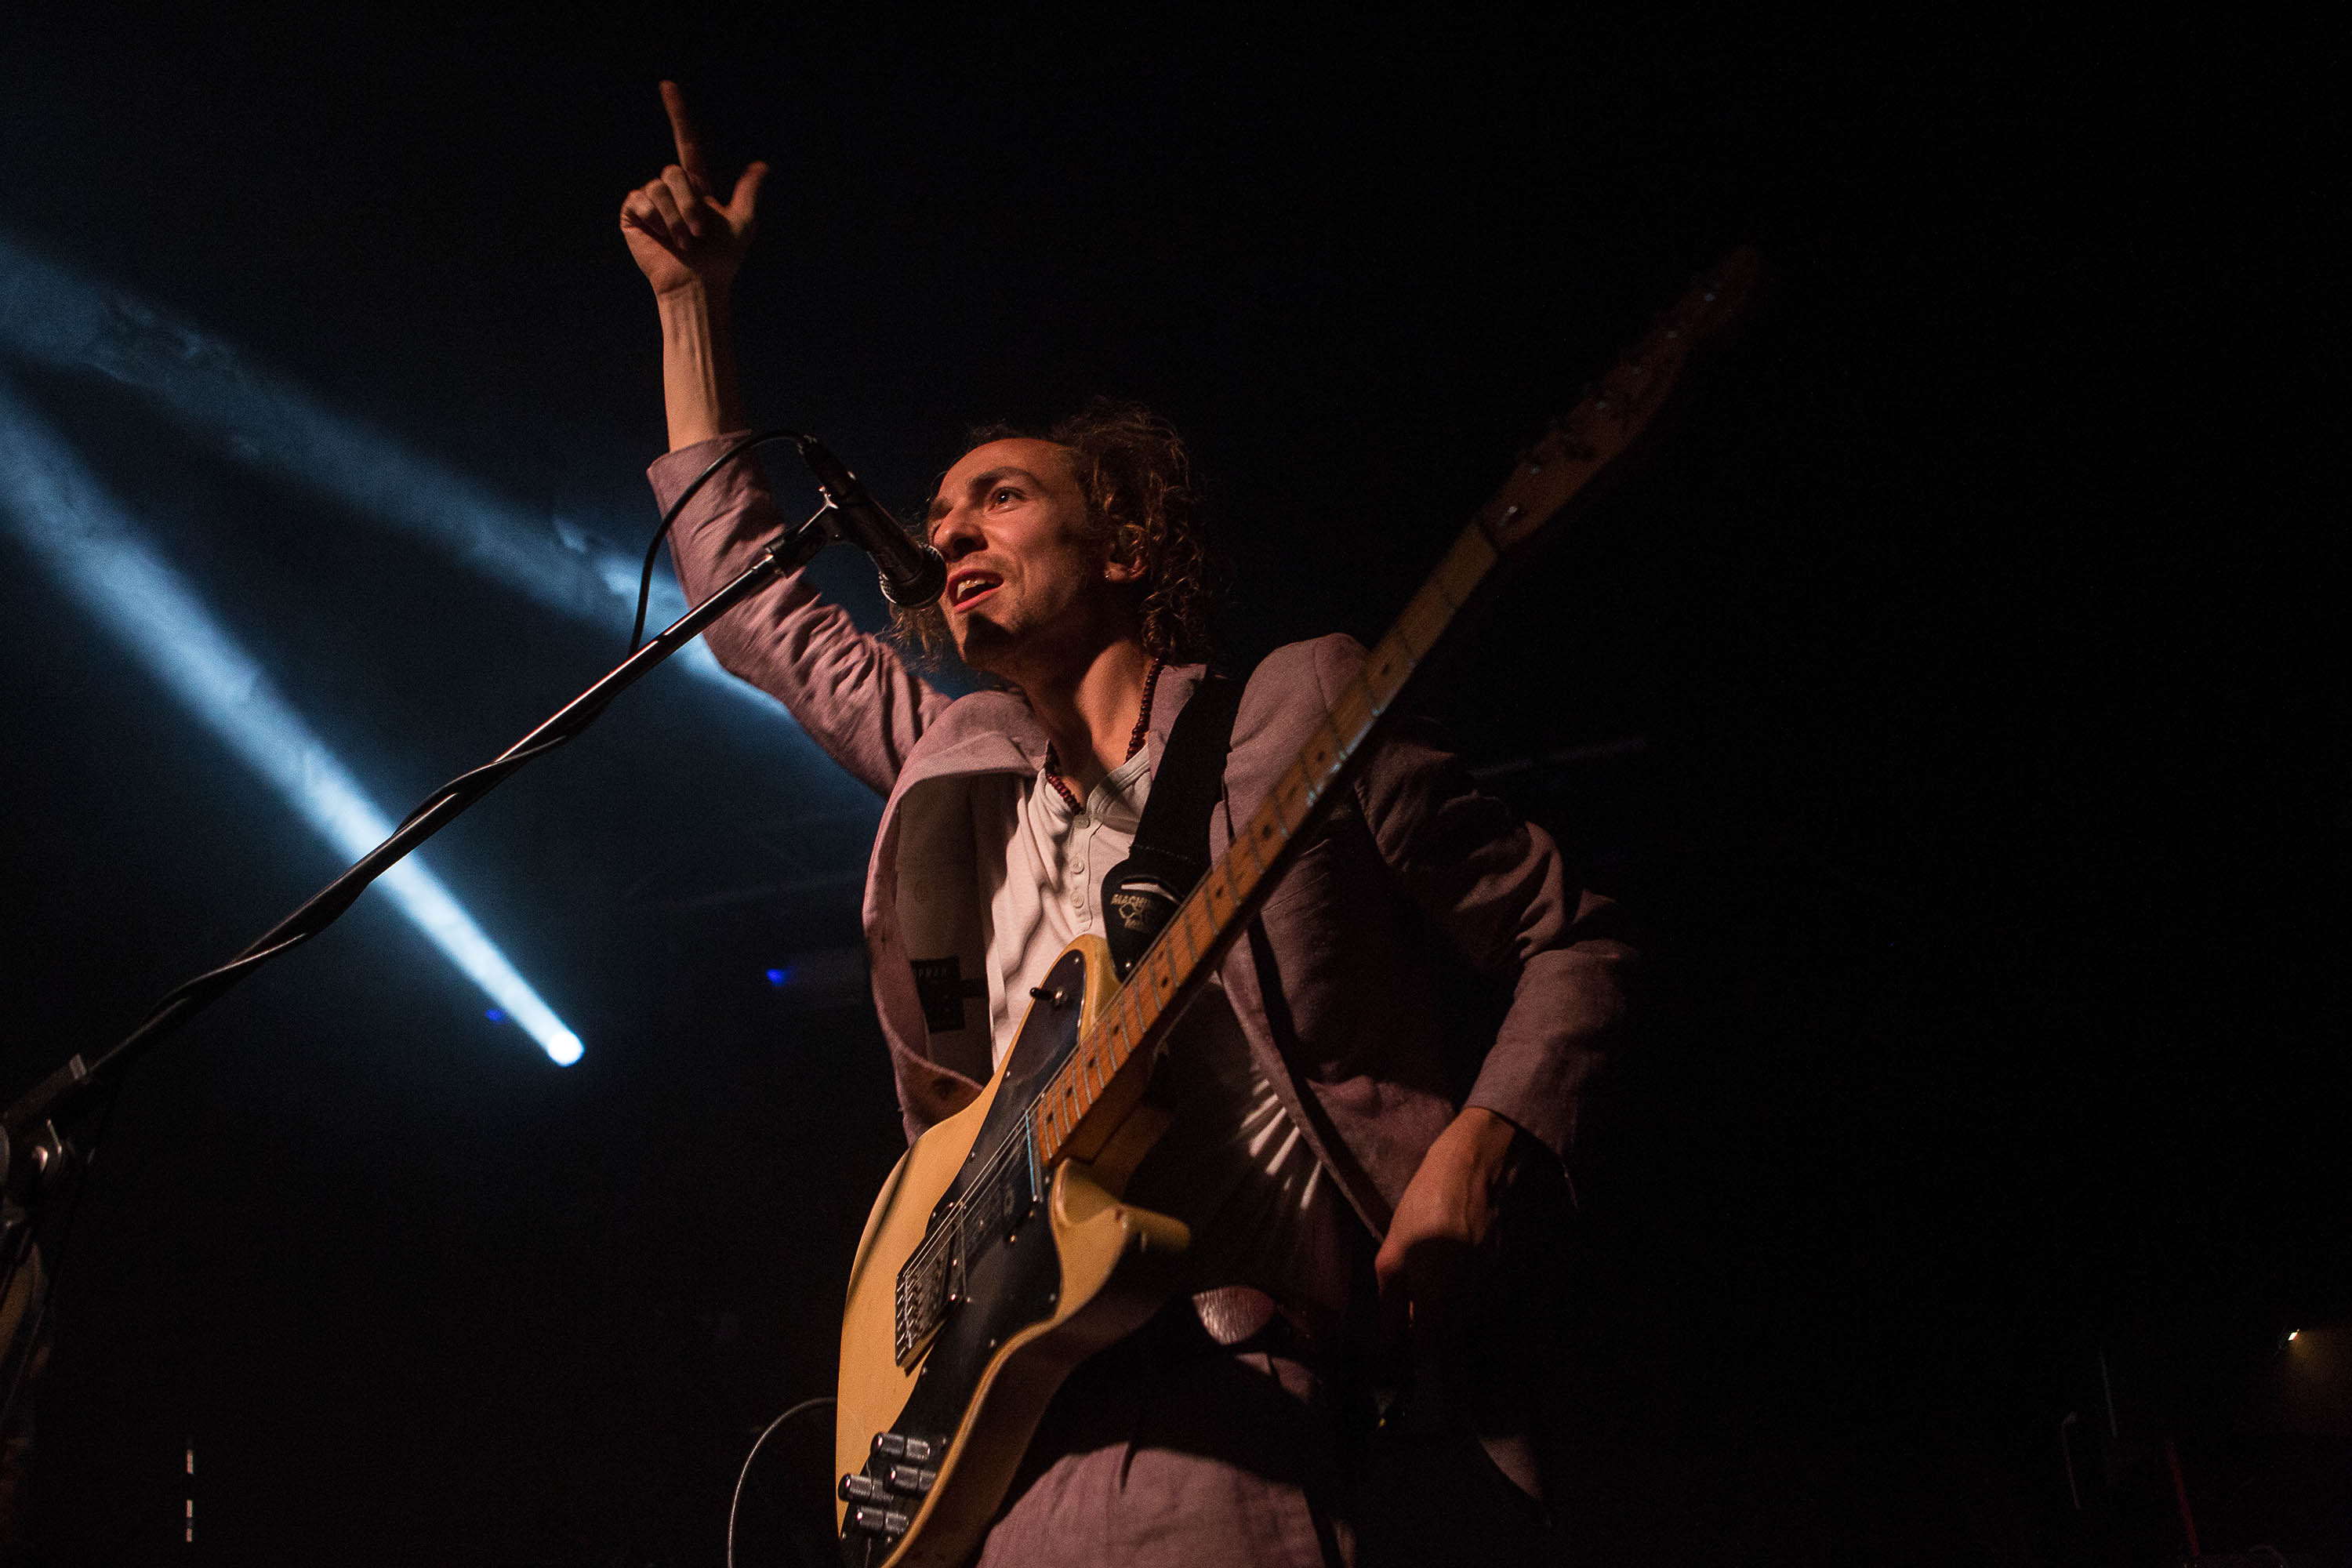 rMystery Jets, The Garage, London